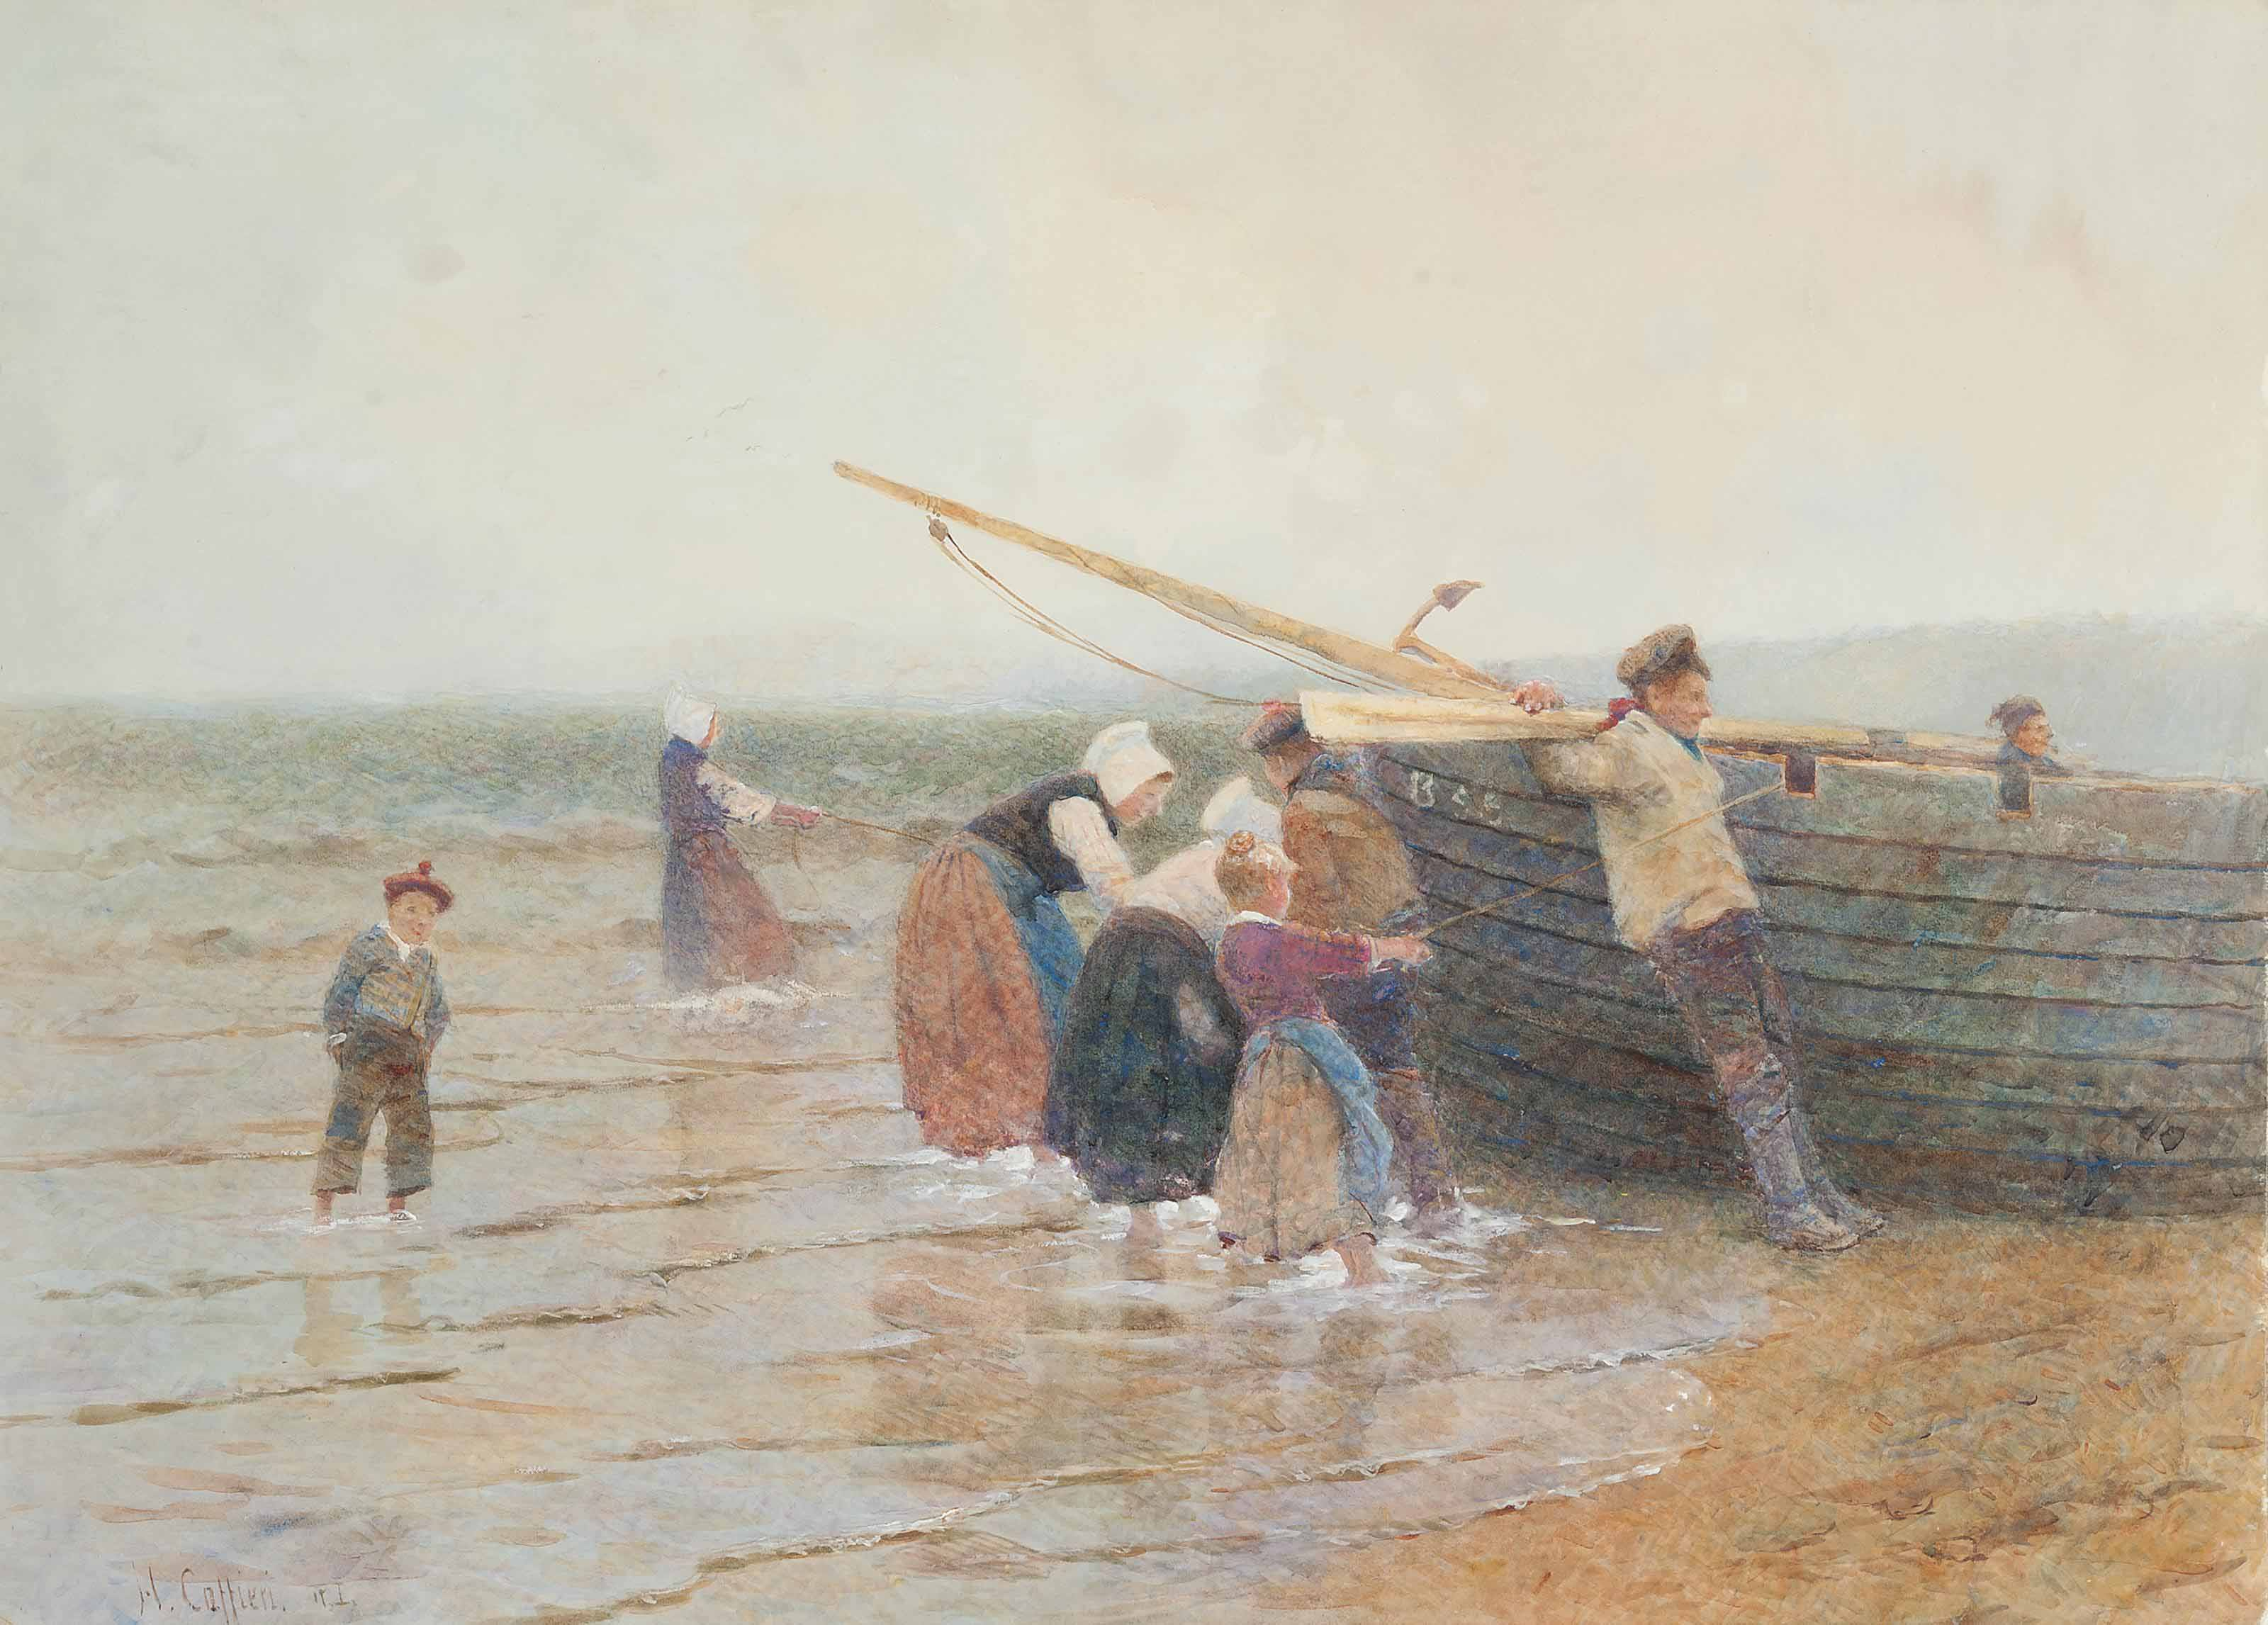 Launching the fishing boat, Brittany